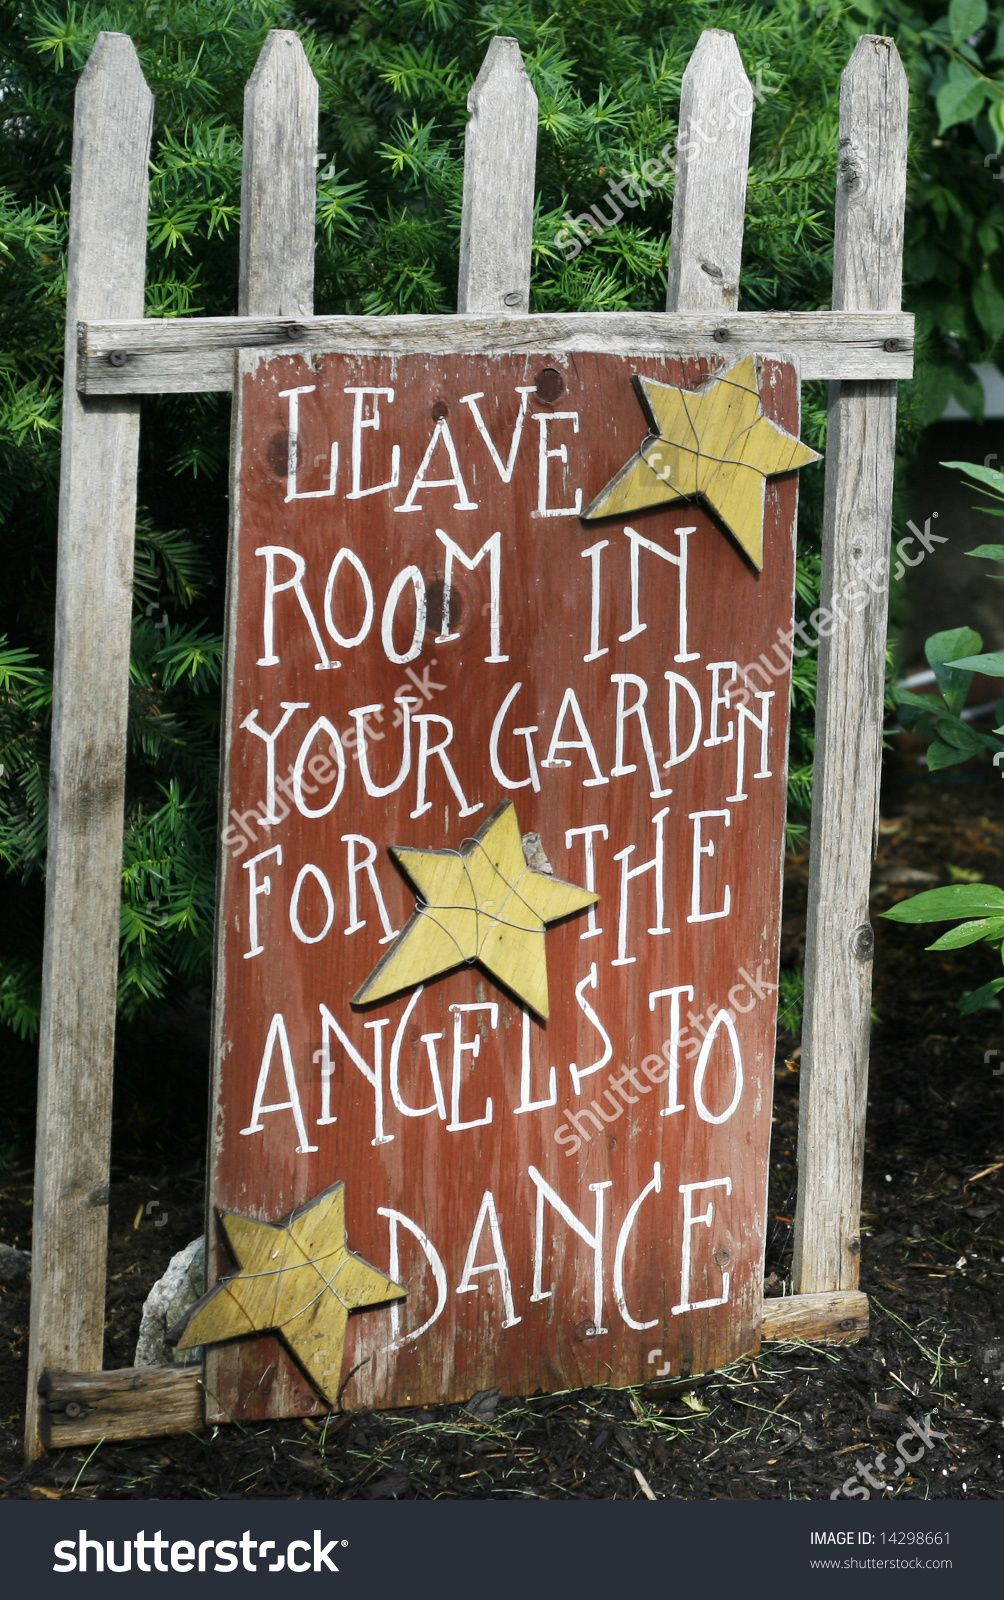 leave room in your garden for angels to dance sign - Google Search ...